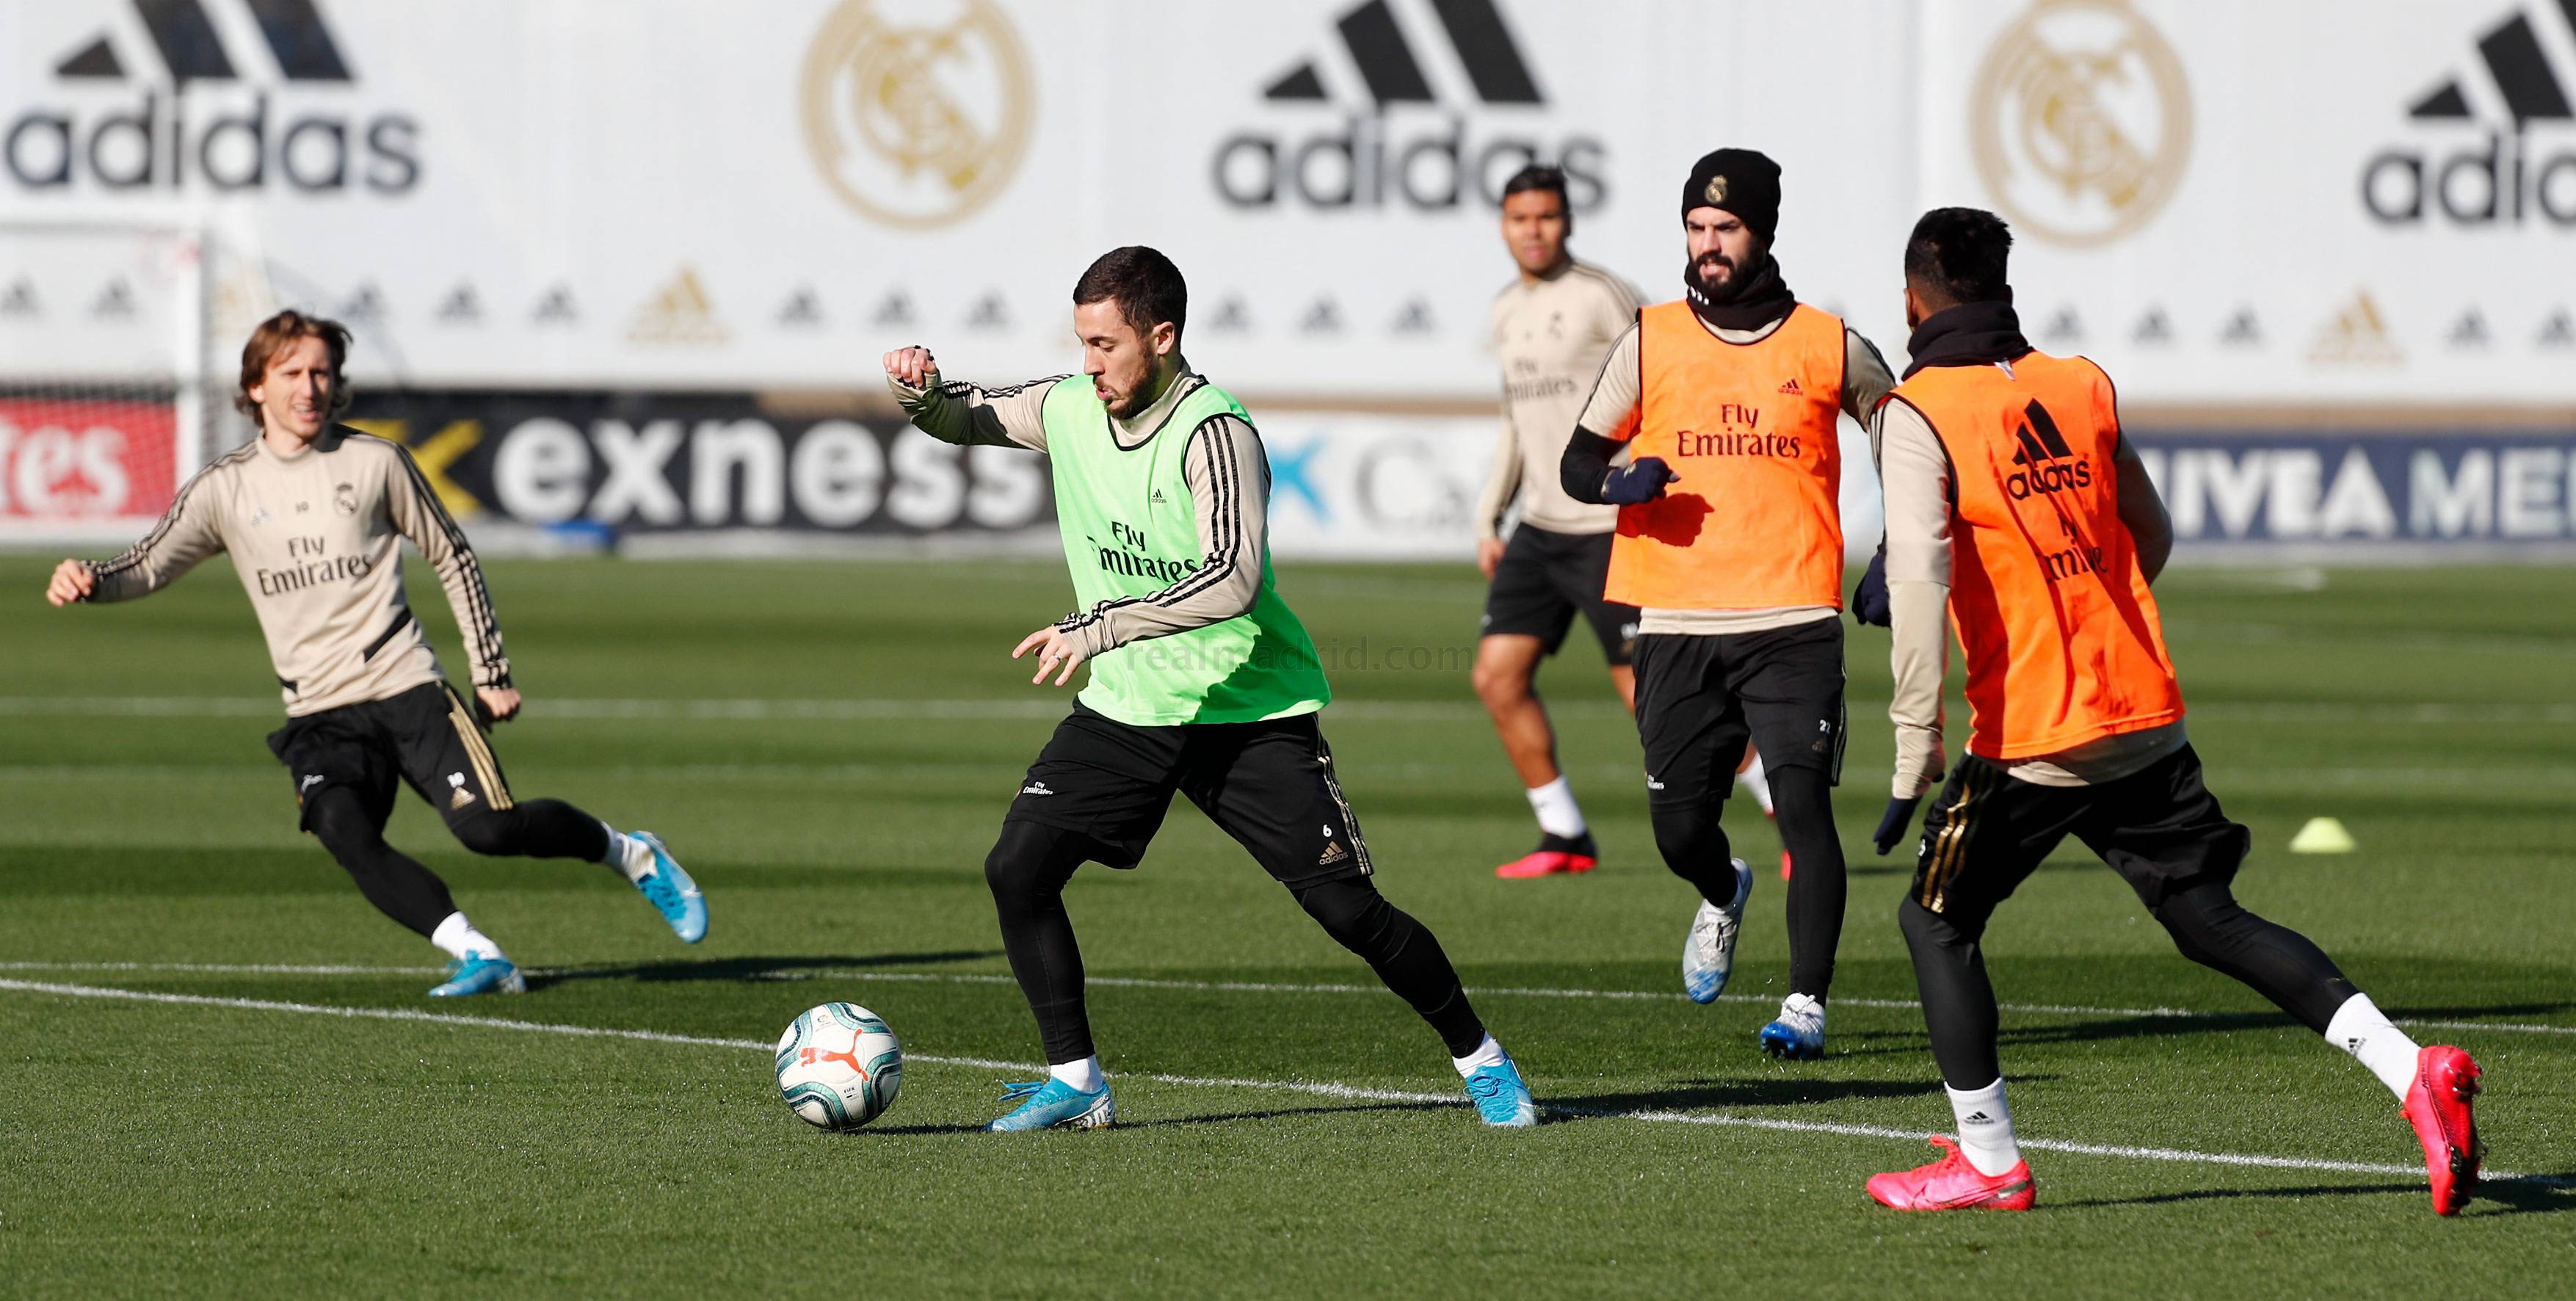 Real Madrid - Entrenamiento del Real Madrid  - 31-01-2020